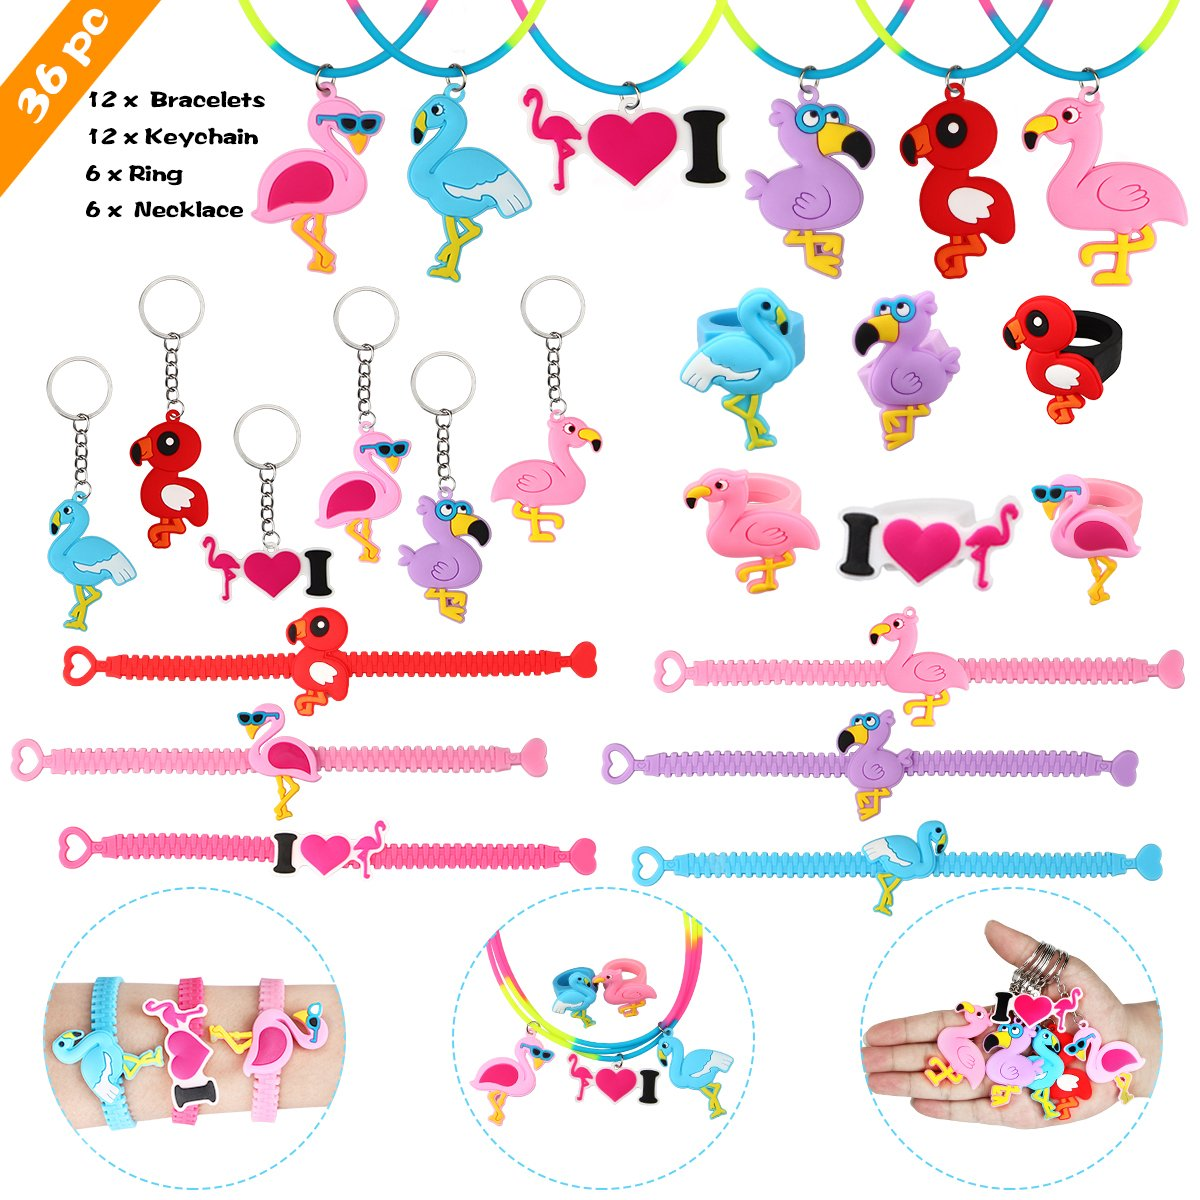 Aitey Flamingo Party Supplies, Flamingo Bracelets, Rings, Necklace and Keychains, Rainbow Flamingo Birthday Party Favors Set Prizes Gift for Kids and Girls (36 Packs)